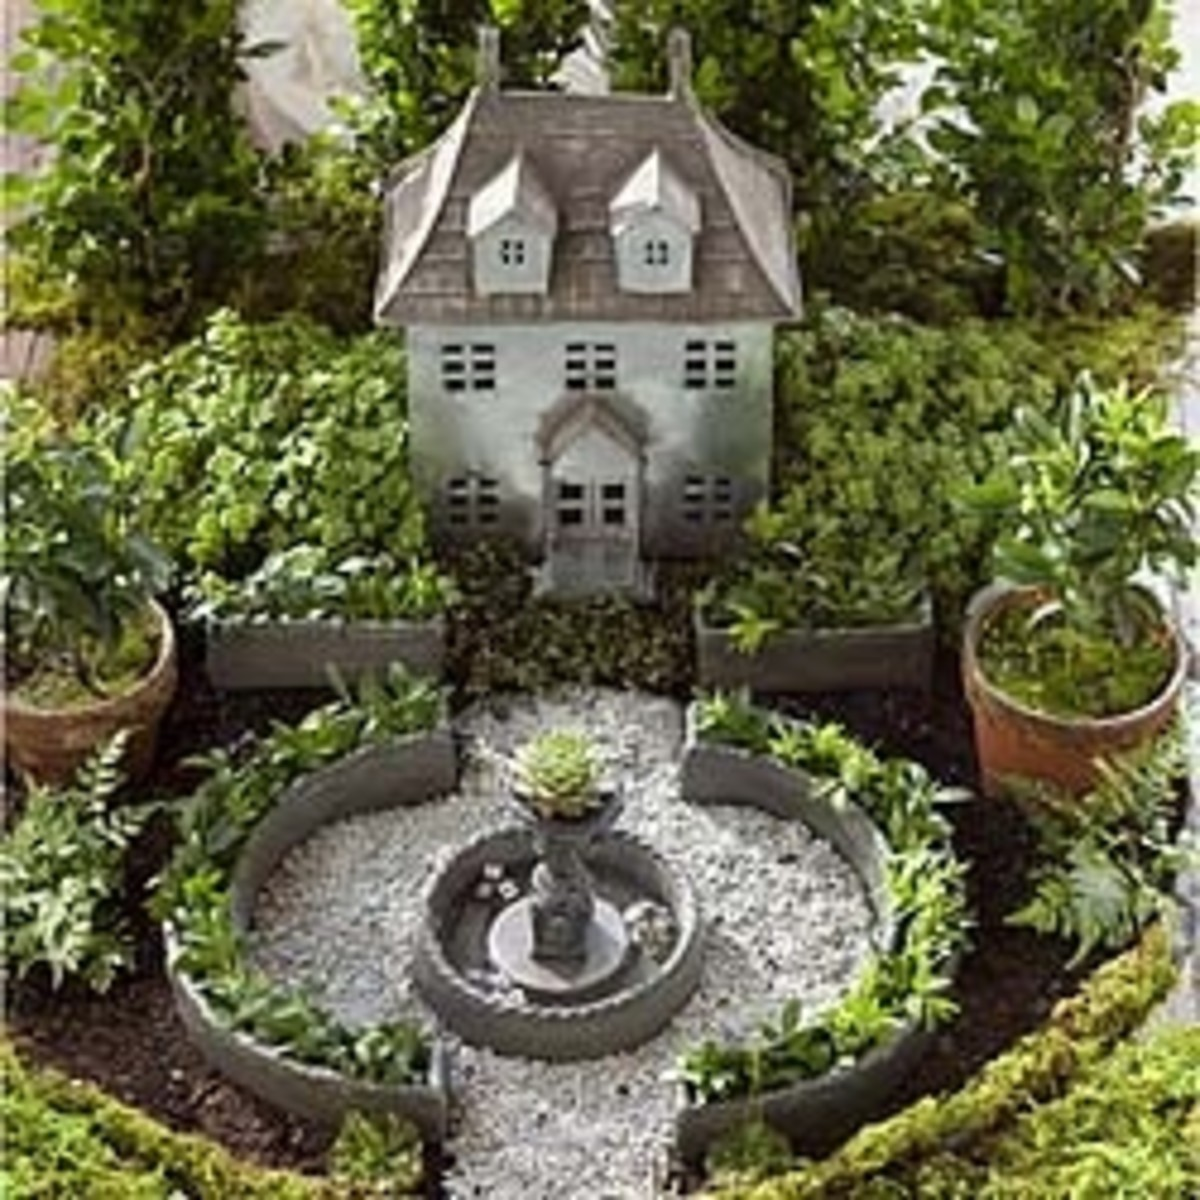 Hereu0027s The French Chateau Fairy Garden   Beautiful Isnu0027t It? Itu0027s Available  At